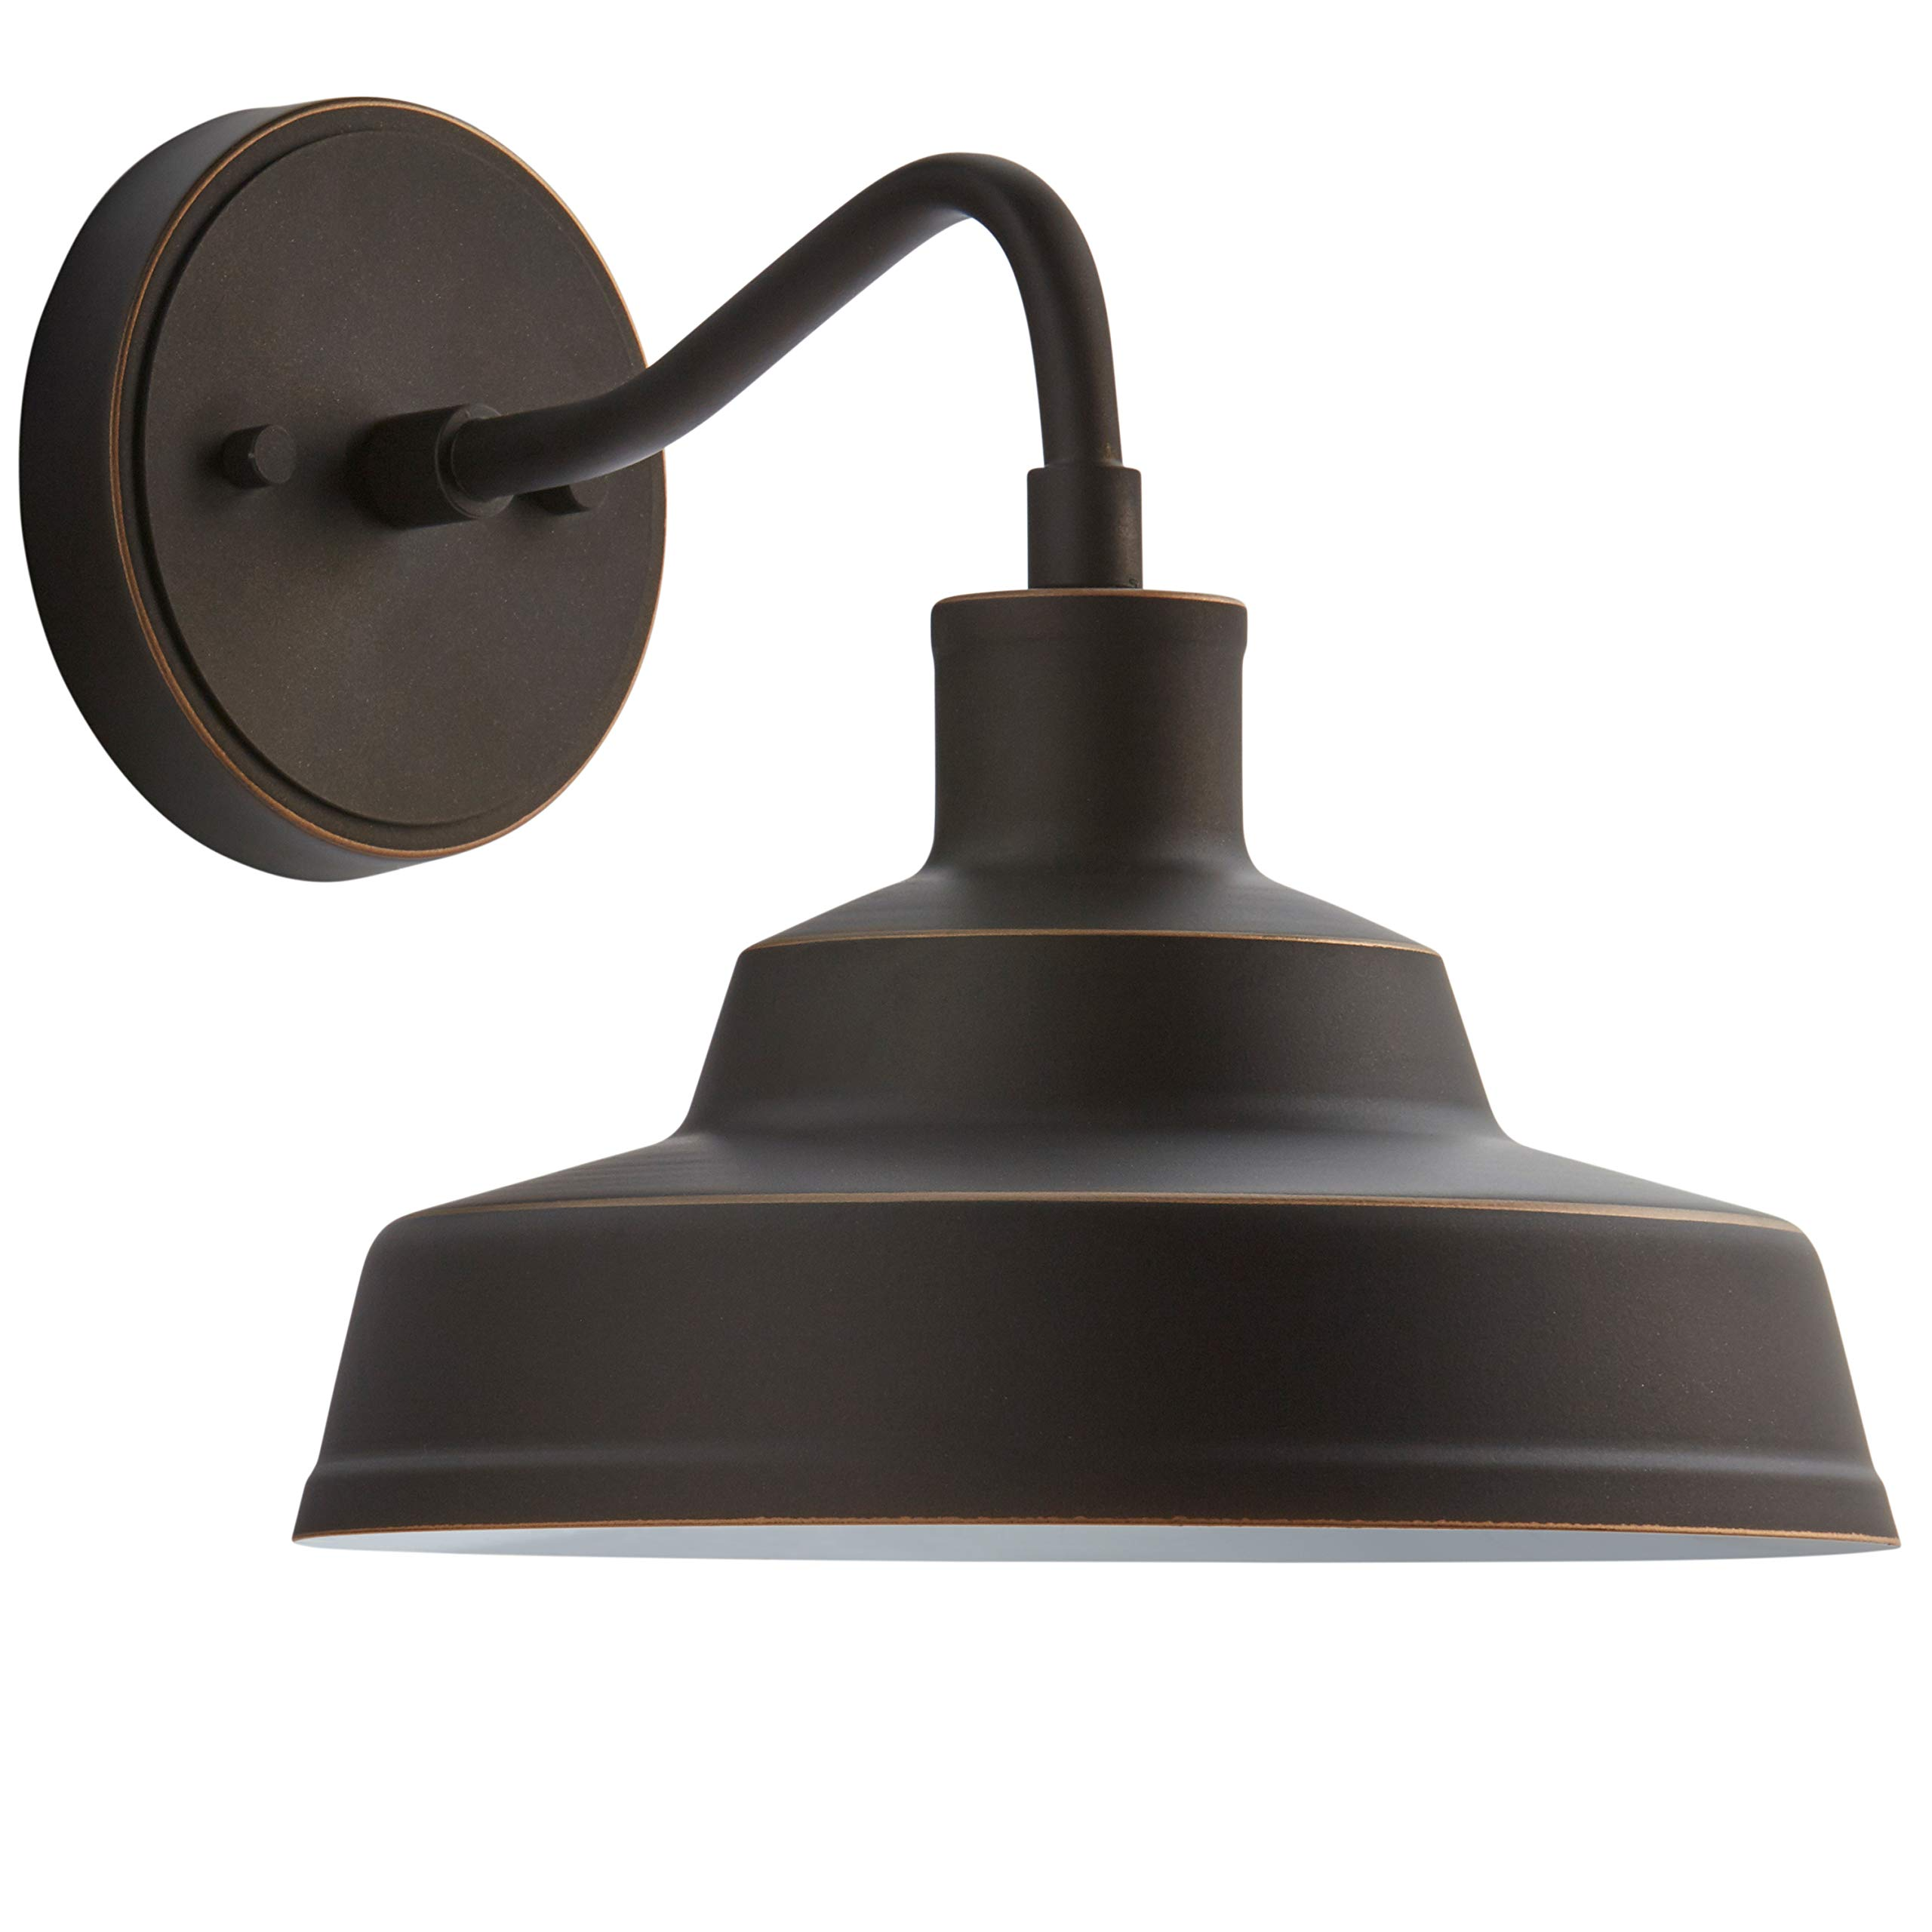 Stone & Beam Industrial Barn Wall Sconce with Bulb, 9.72''H, Antique Bronze